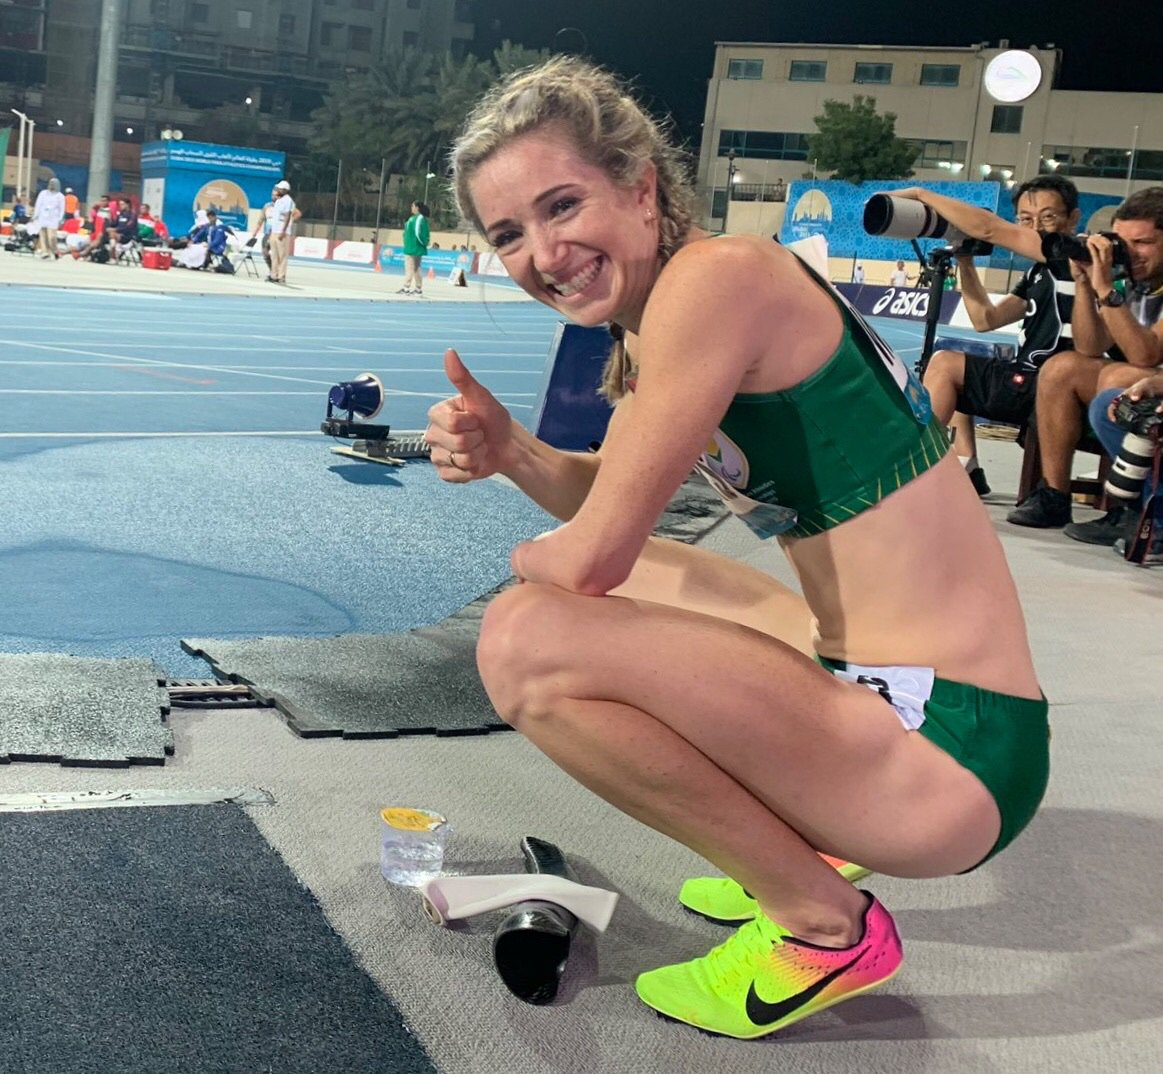 Anrune Weyers fights for para-athlete recognition